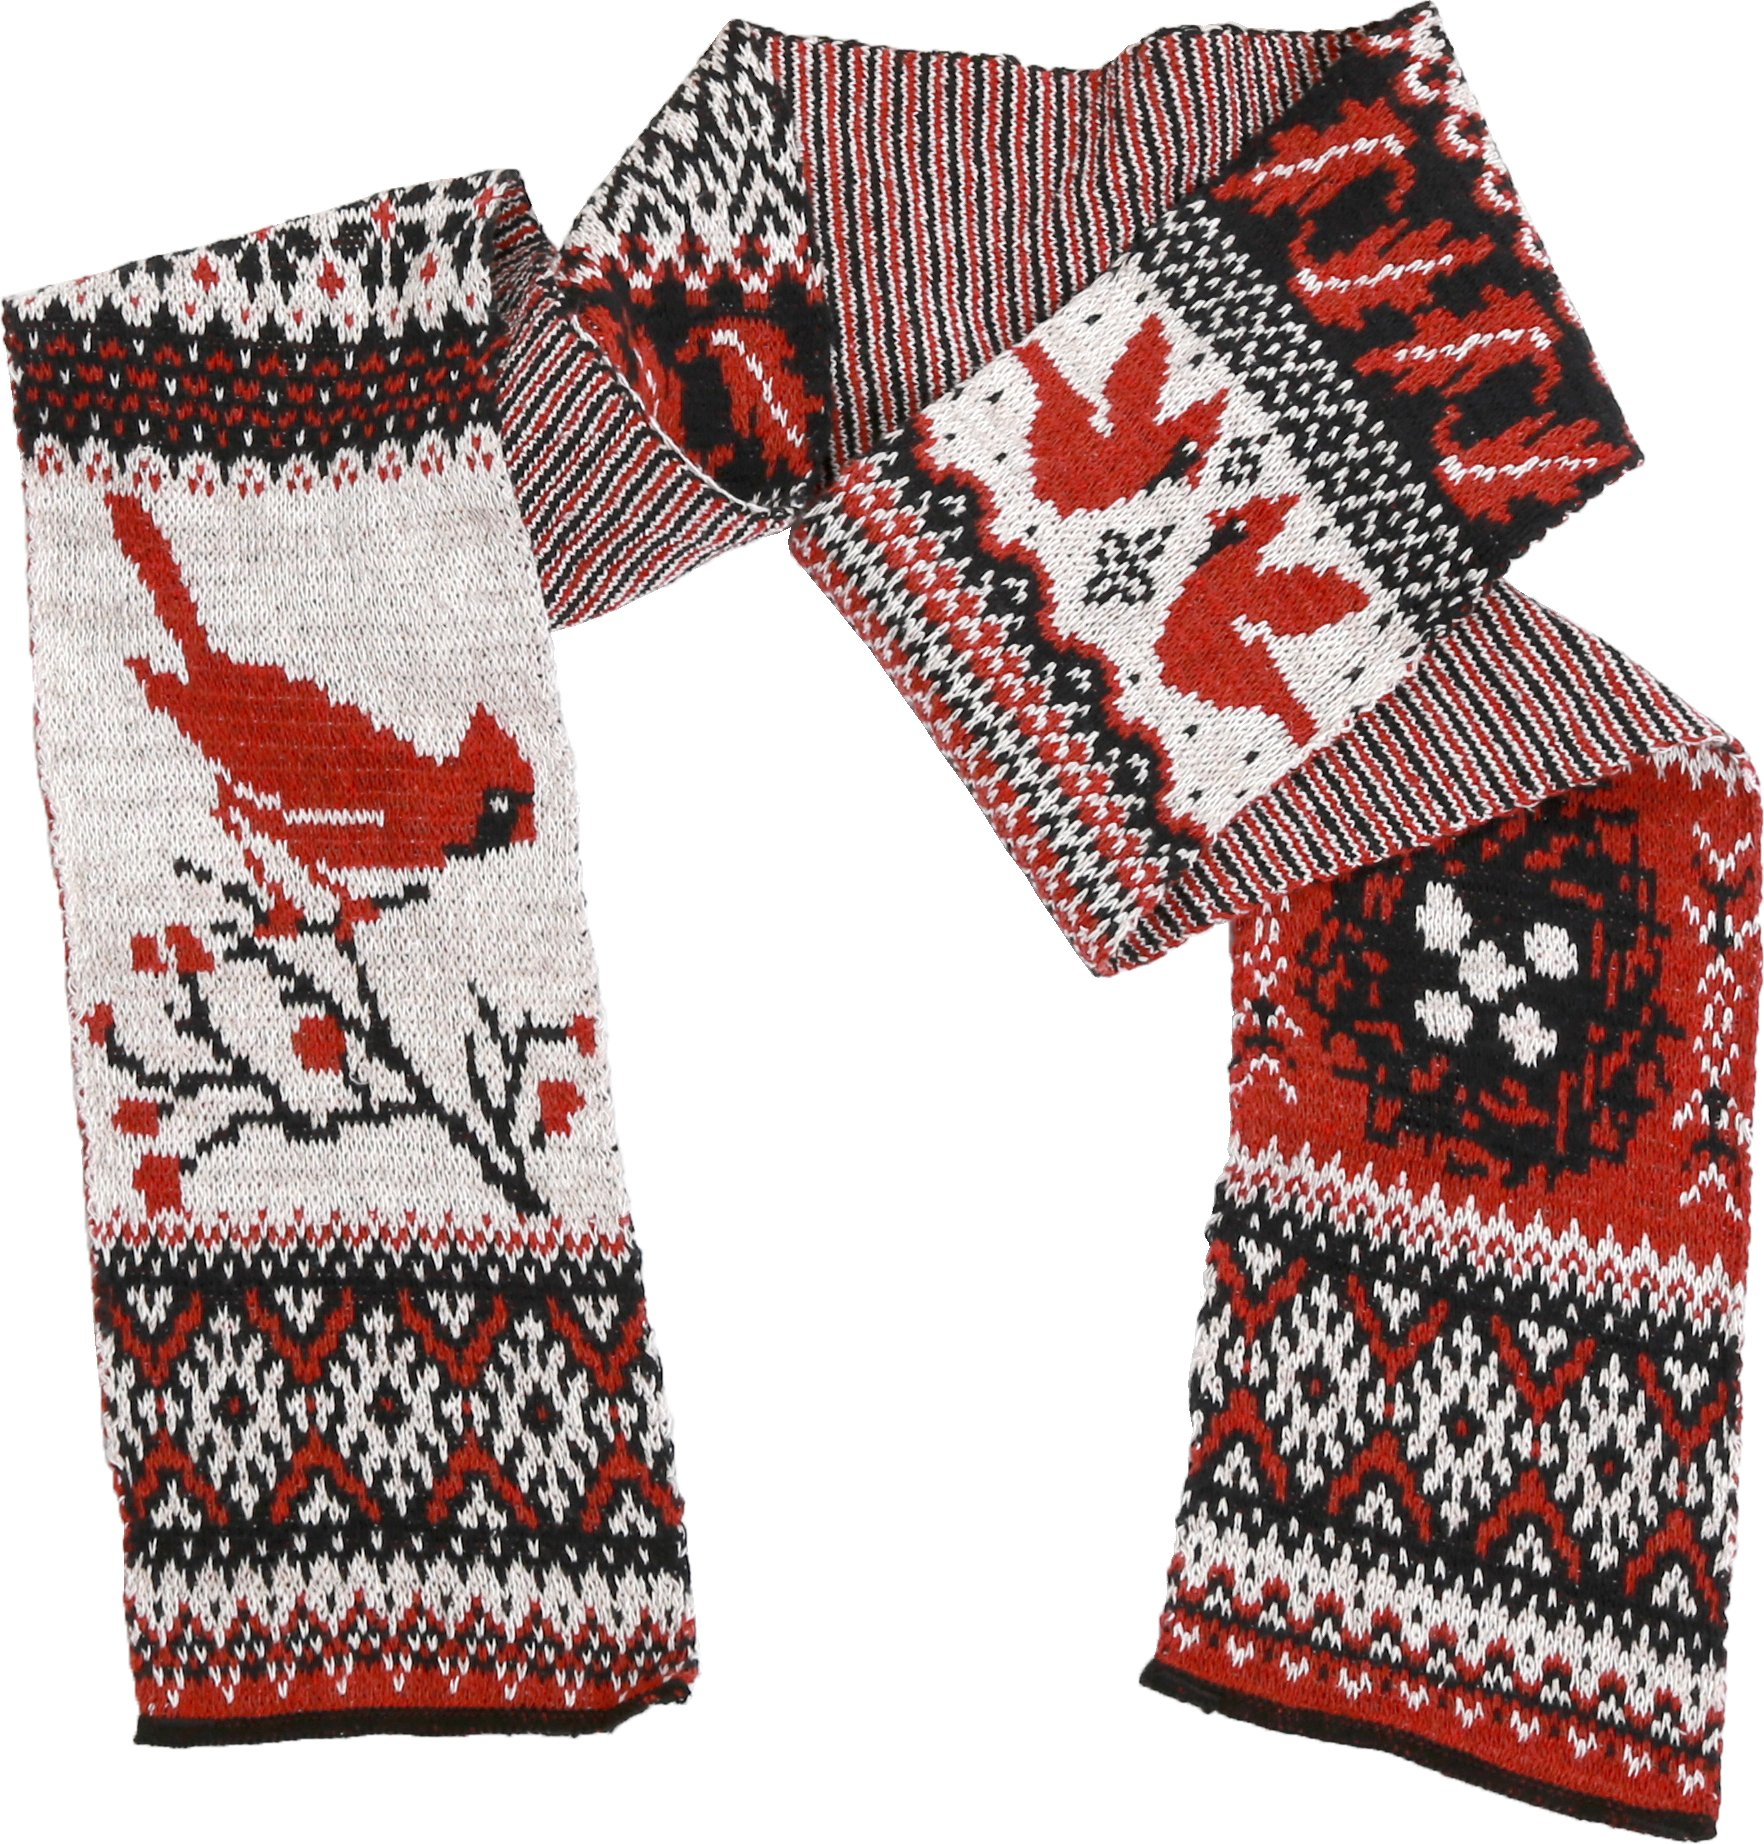 Green 3 Fashion Sweater Knit Scarf (Red/Black Cardinal Fair Isle) - Womens Recycled Cotton Fashion Scarf, Made in The USA (One Size)